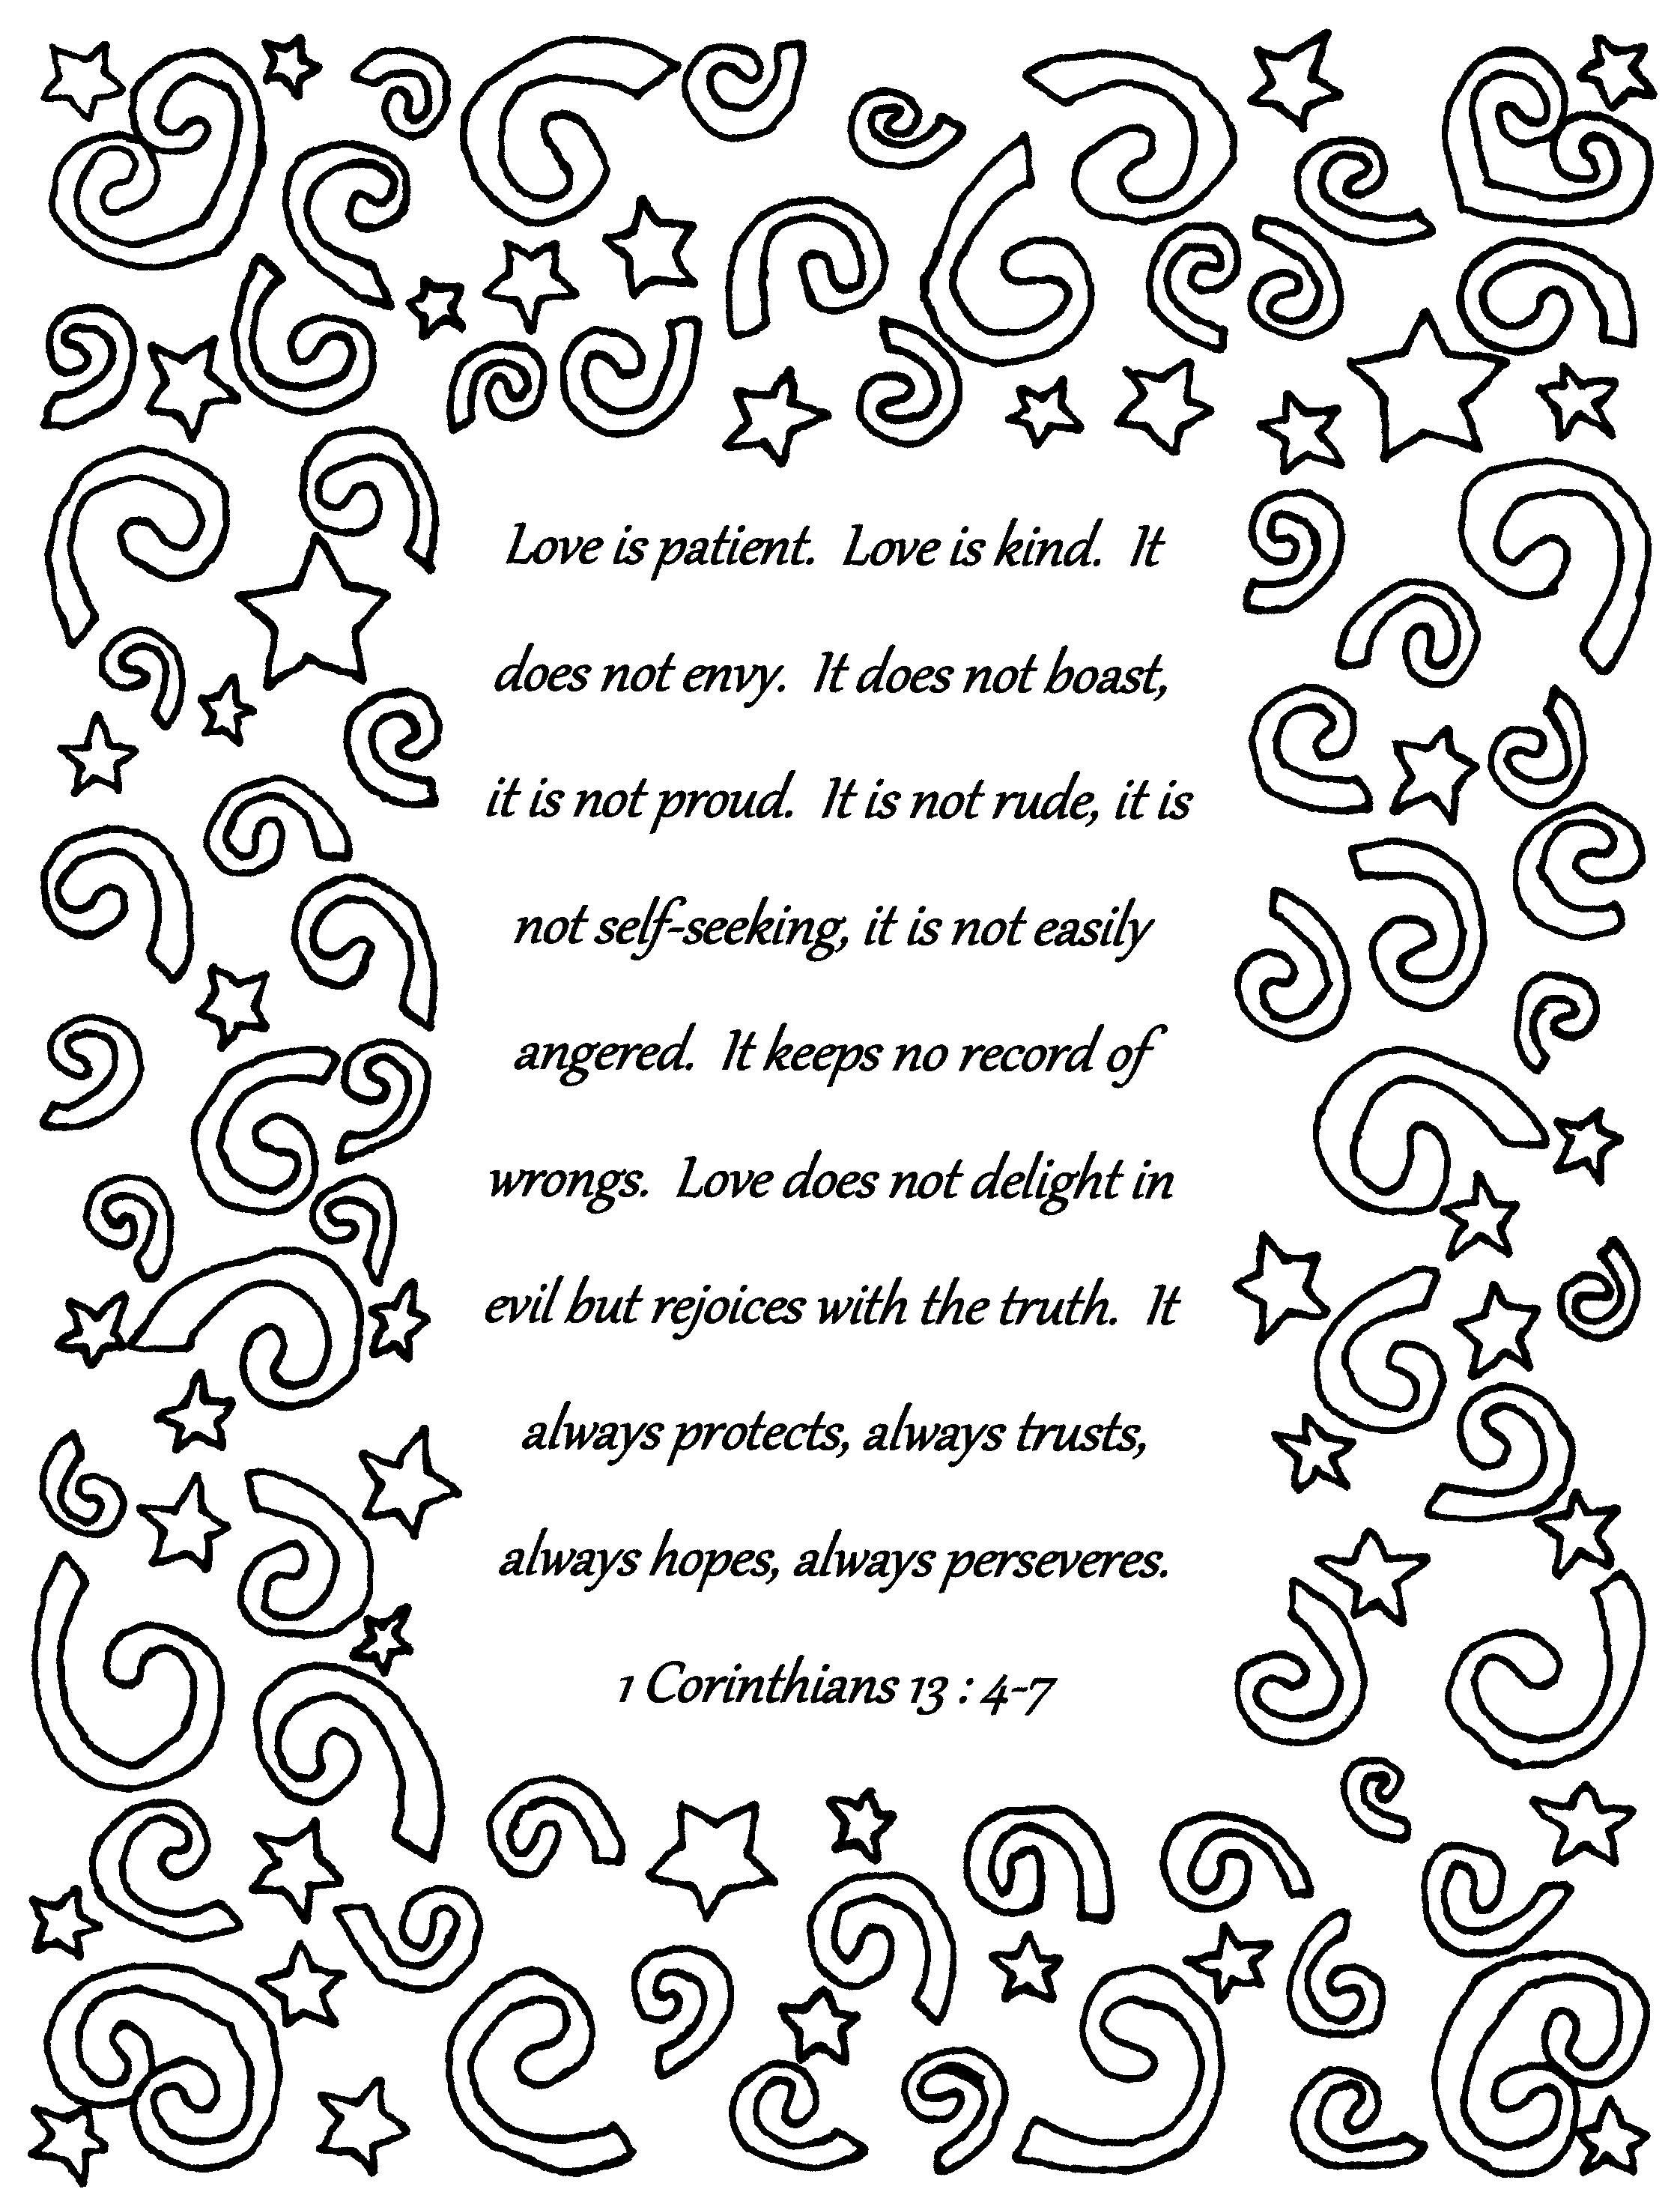 Love Is Patient 1 Corinthians 13 4 7 Bible Verse Coloring Page